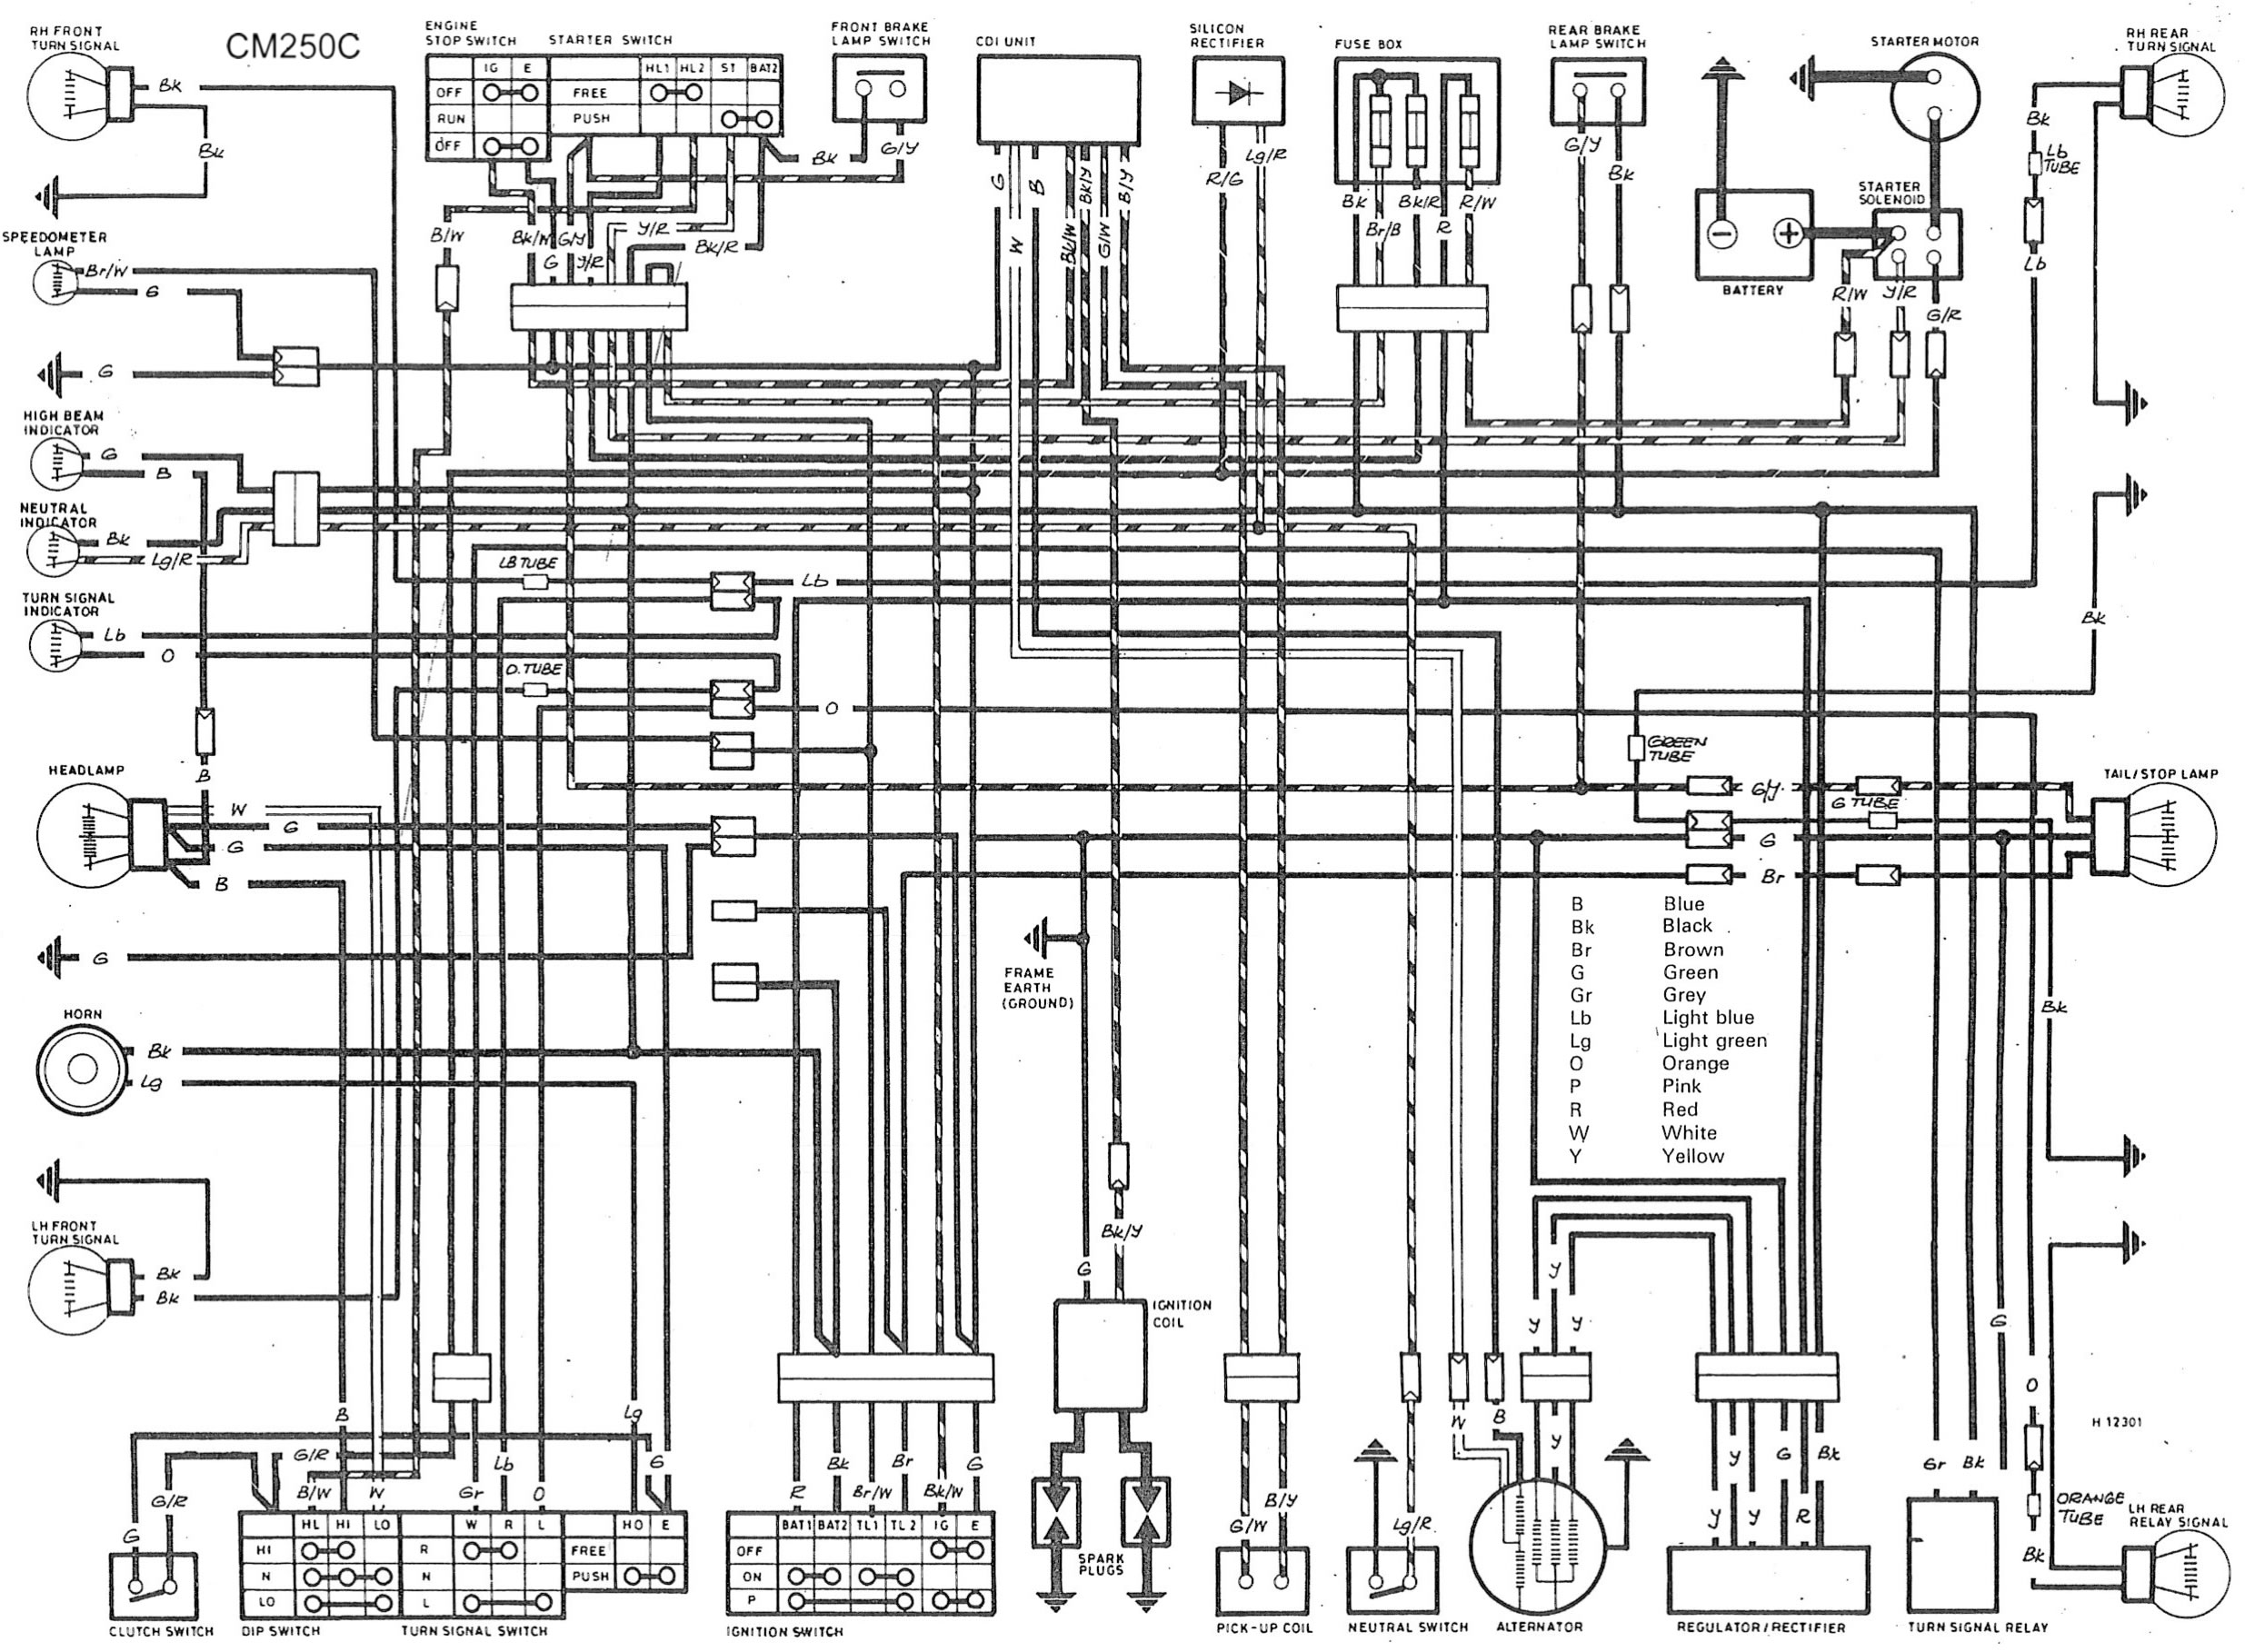 wirediagram cm wiring diagram cm hoist wiring diagram \u2022 wiring diagrams j wiring diagram for victory motorcycles at bakdesigns.co